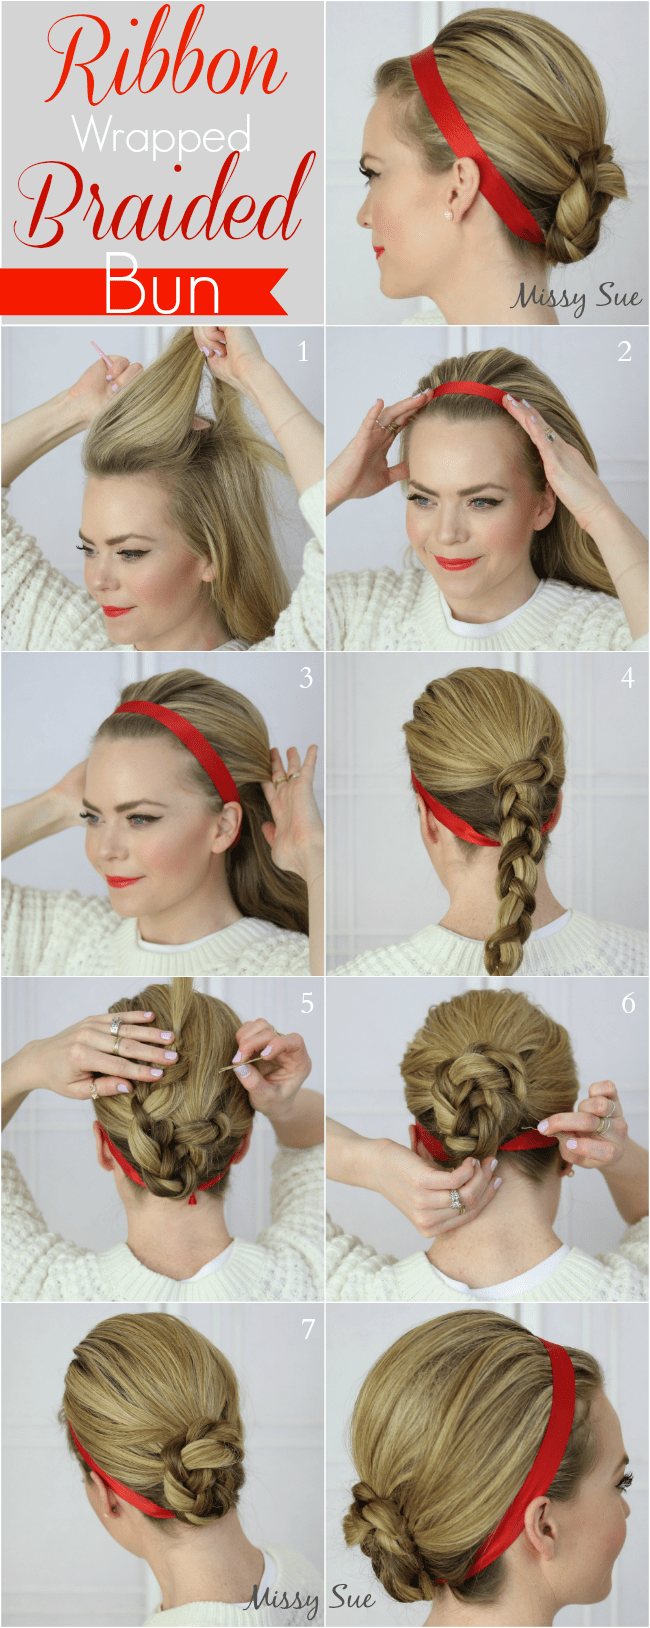 ribbon-wrapped-braided-bun-missy-sue-blog